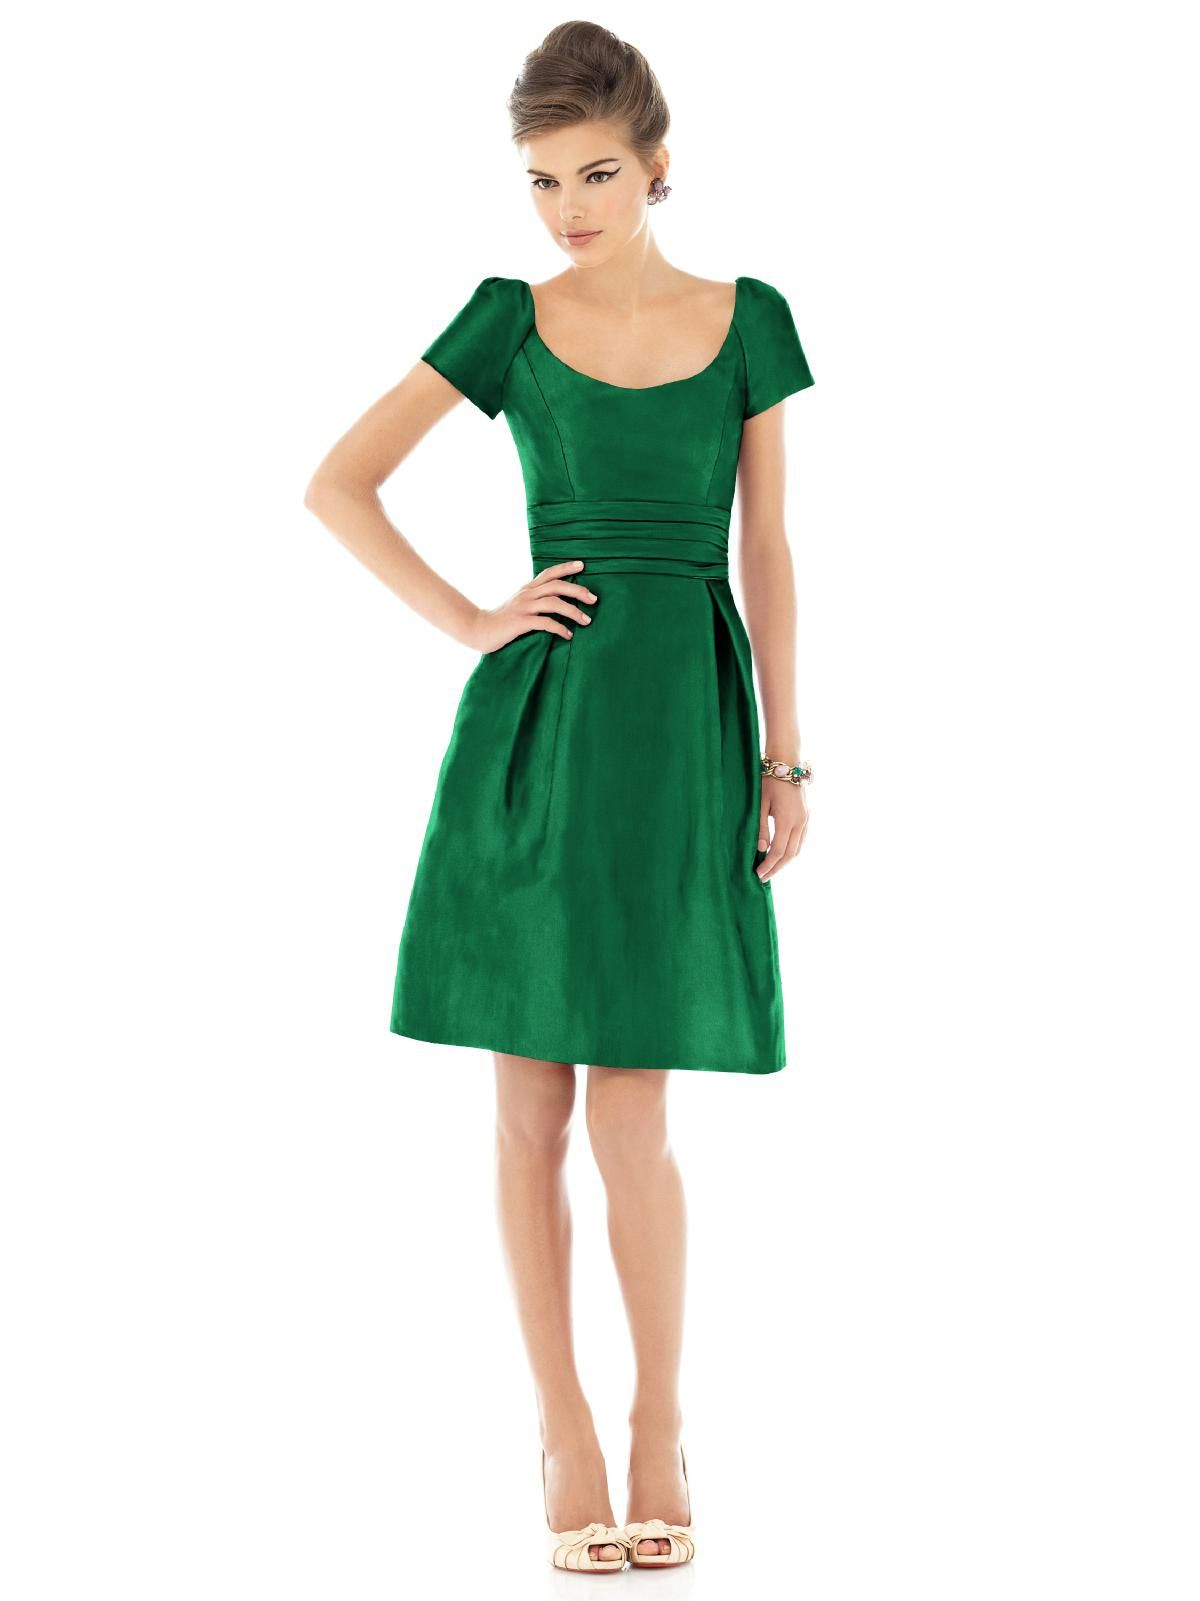 Alfred sung for fall wedding moh pinterest alfred sung the alfred sung bridesmaid collection offers fresh contemporary bridesmaid dresses while keeping your budget in mind ombrellifo Image collections